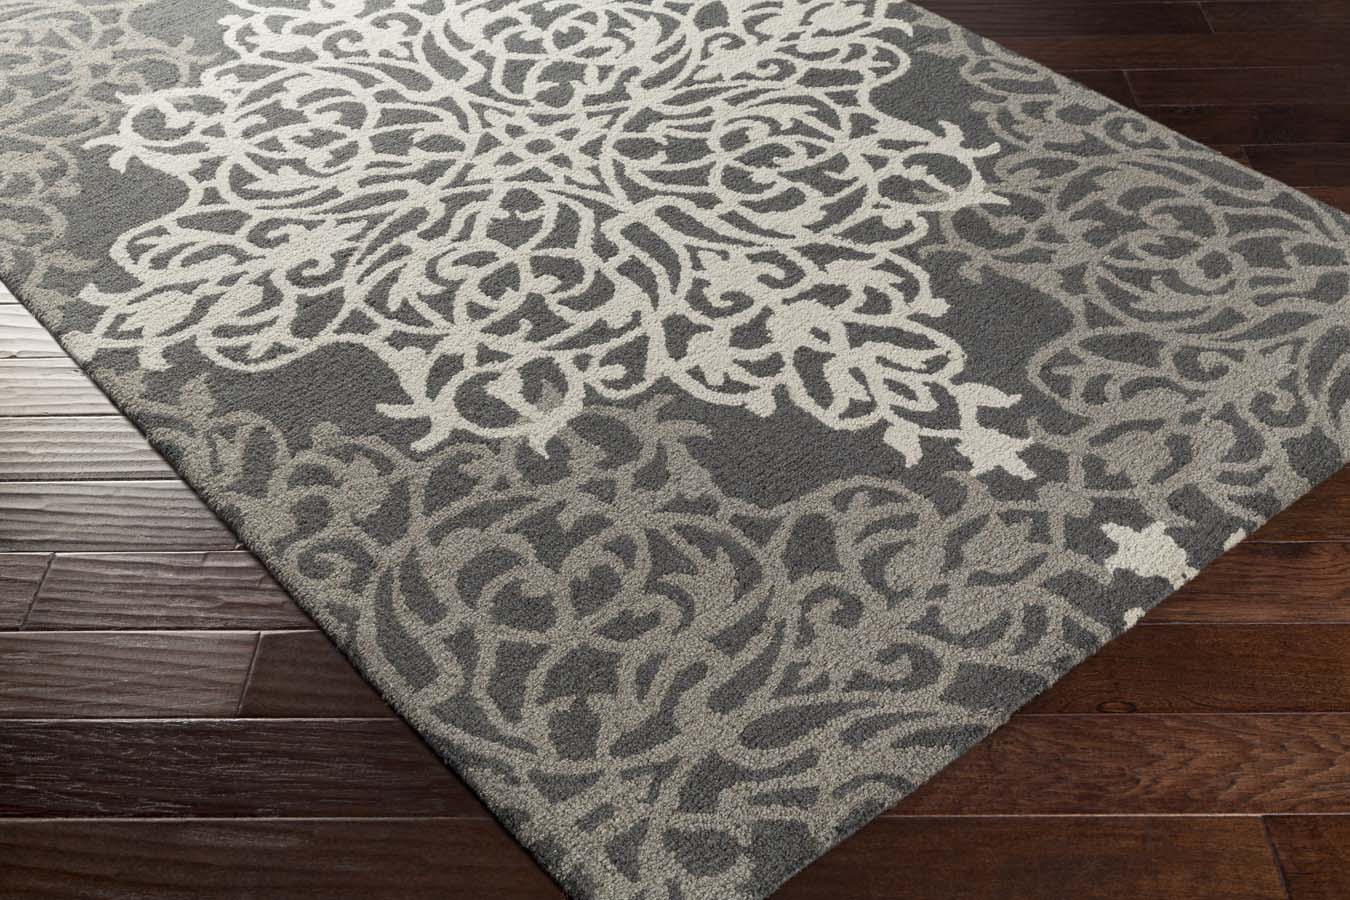 Hermitage Collection by Artistic Weavers